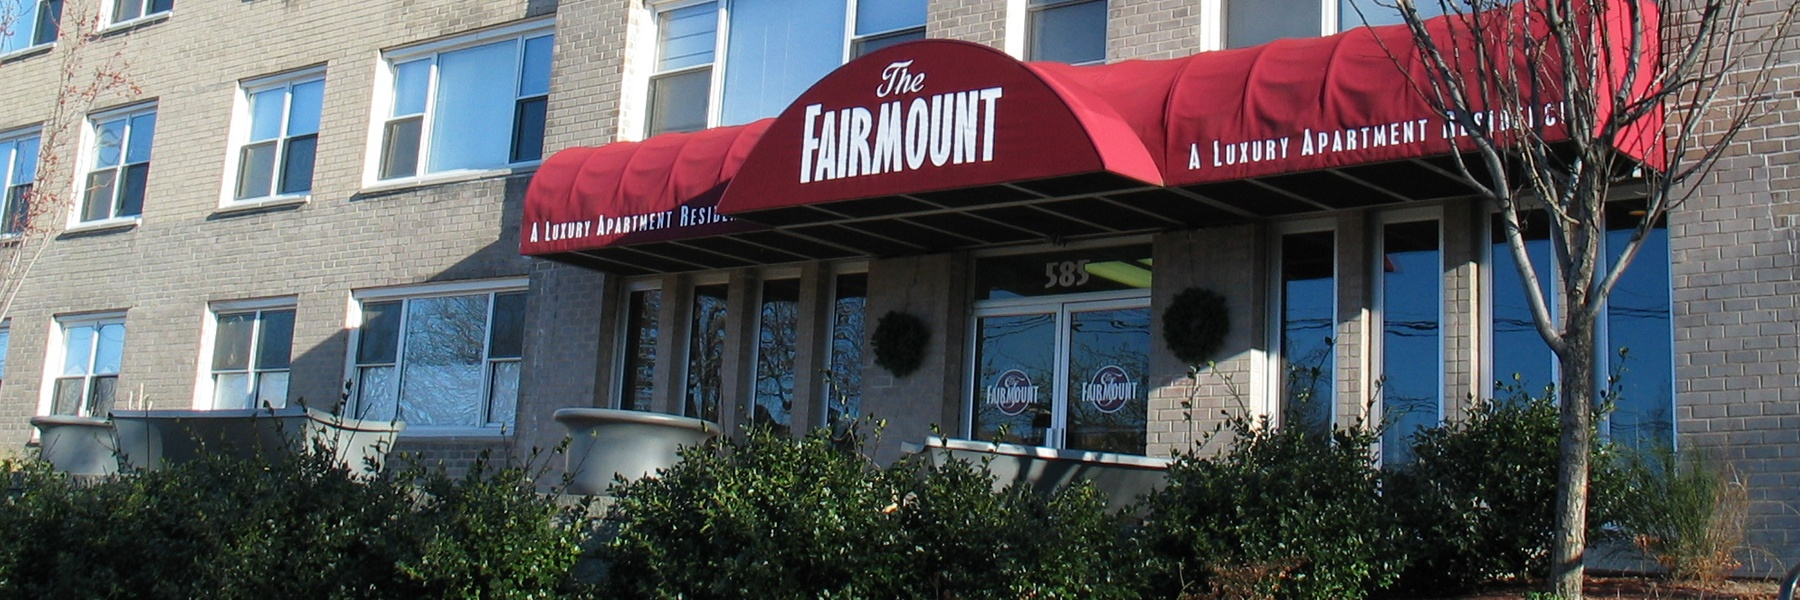 The Fairmount Apartments For Rent in Elizabeth, NJ Building View